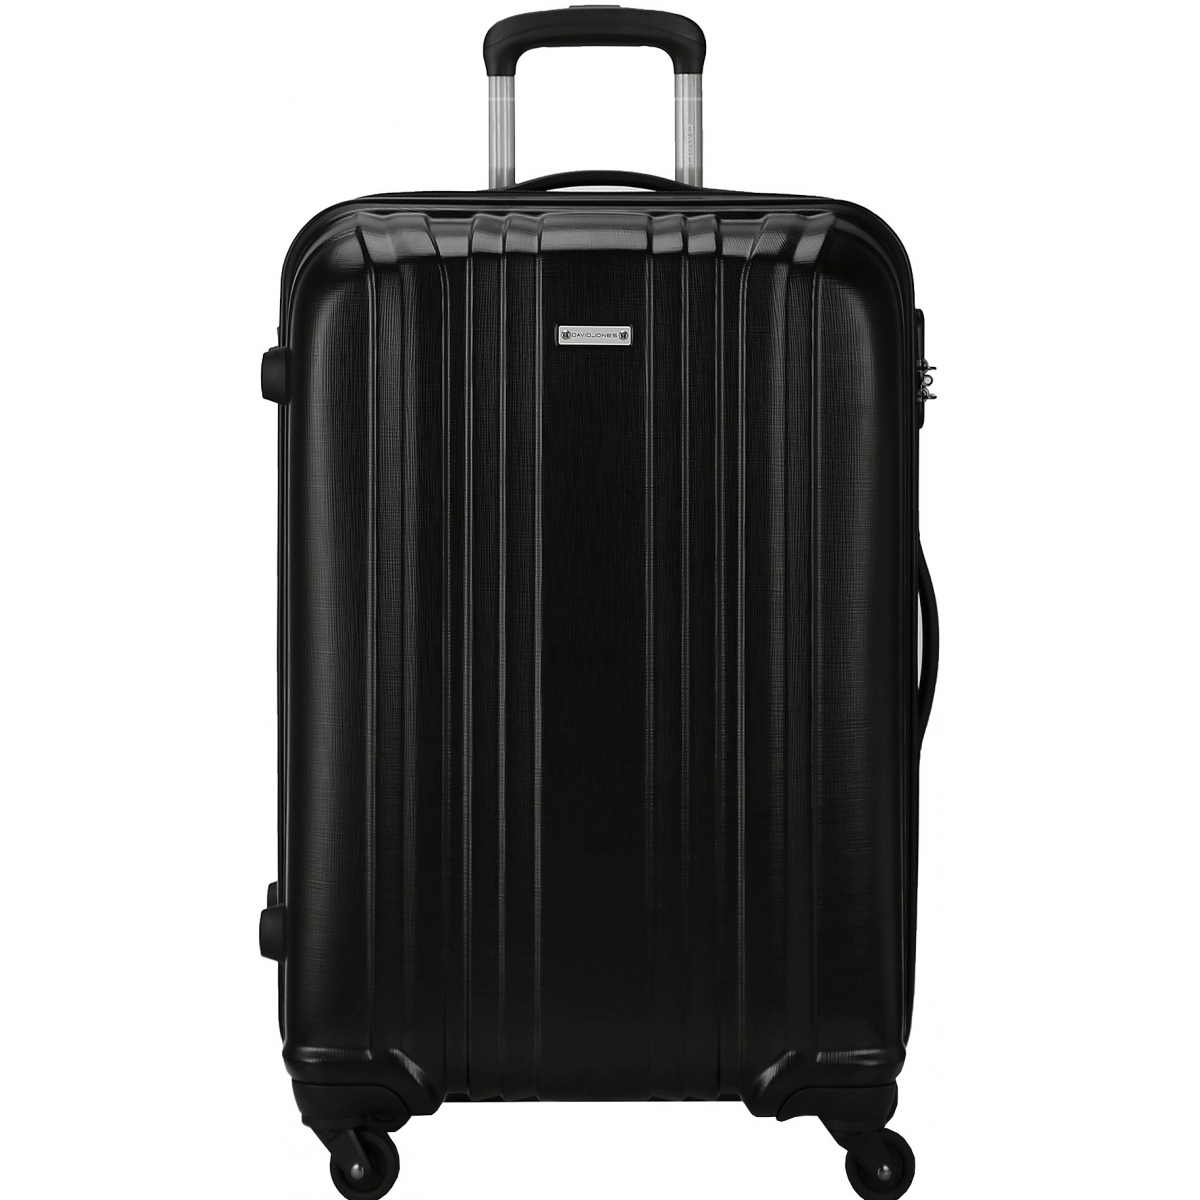 valise rigide david jones taille g 76cm ba10171g couleur principale black valise pas. Black Bedroom Furniture Sets. Home Design Ideas